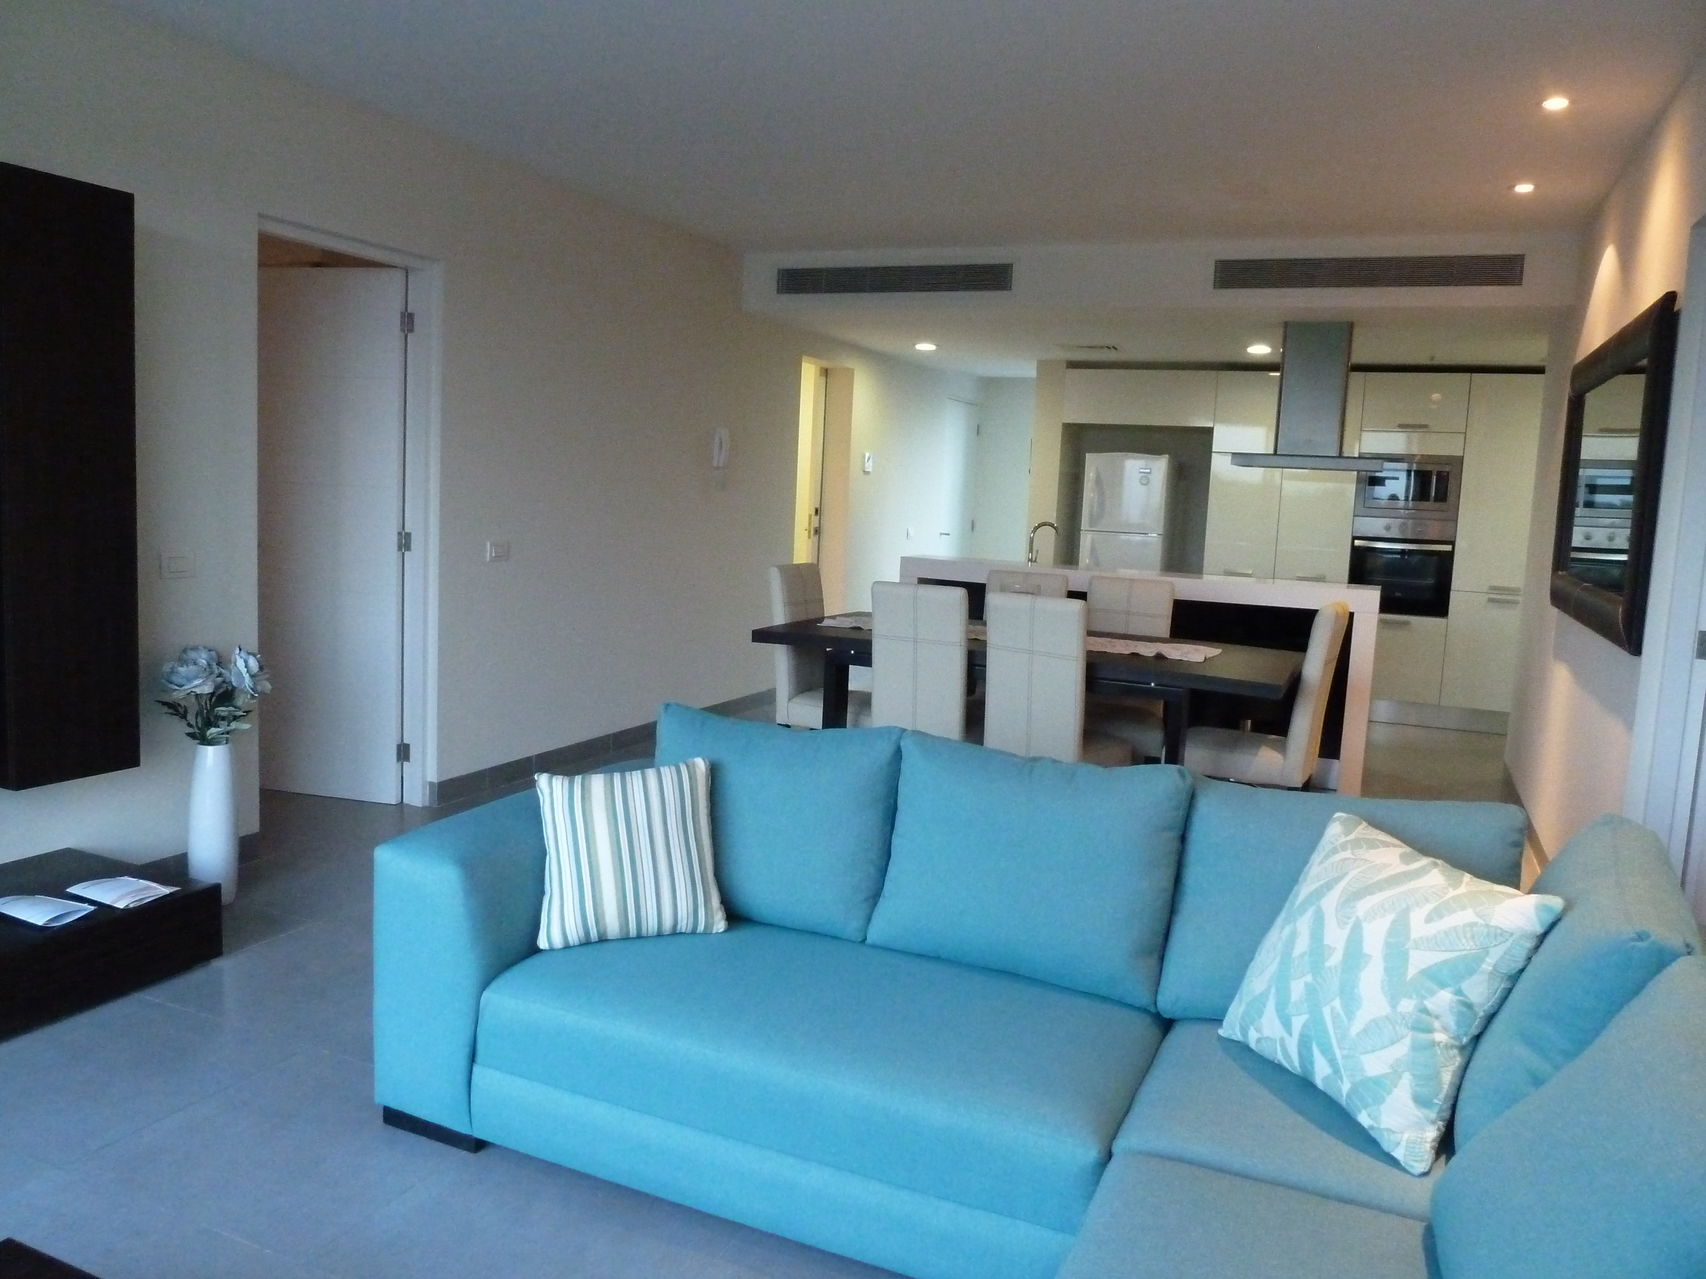 Nick Price C 411 Penthouse Unit in Mareazul Hotel, $160 per night